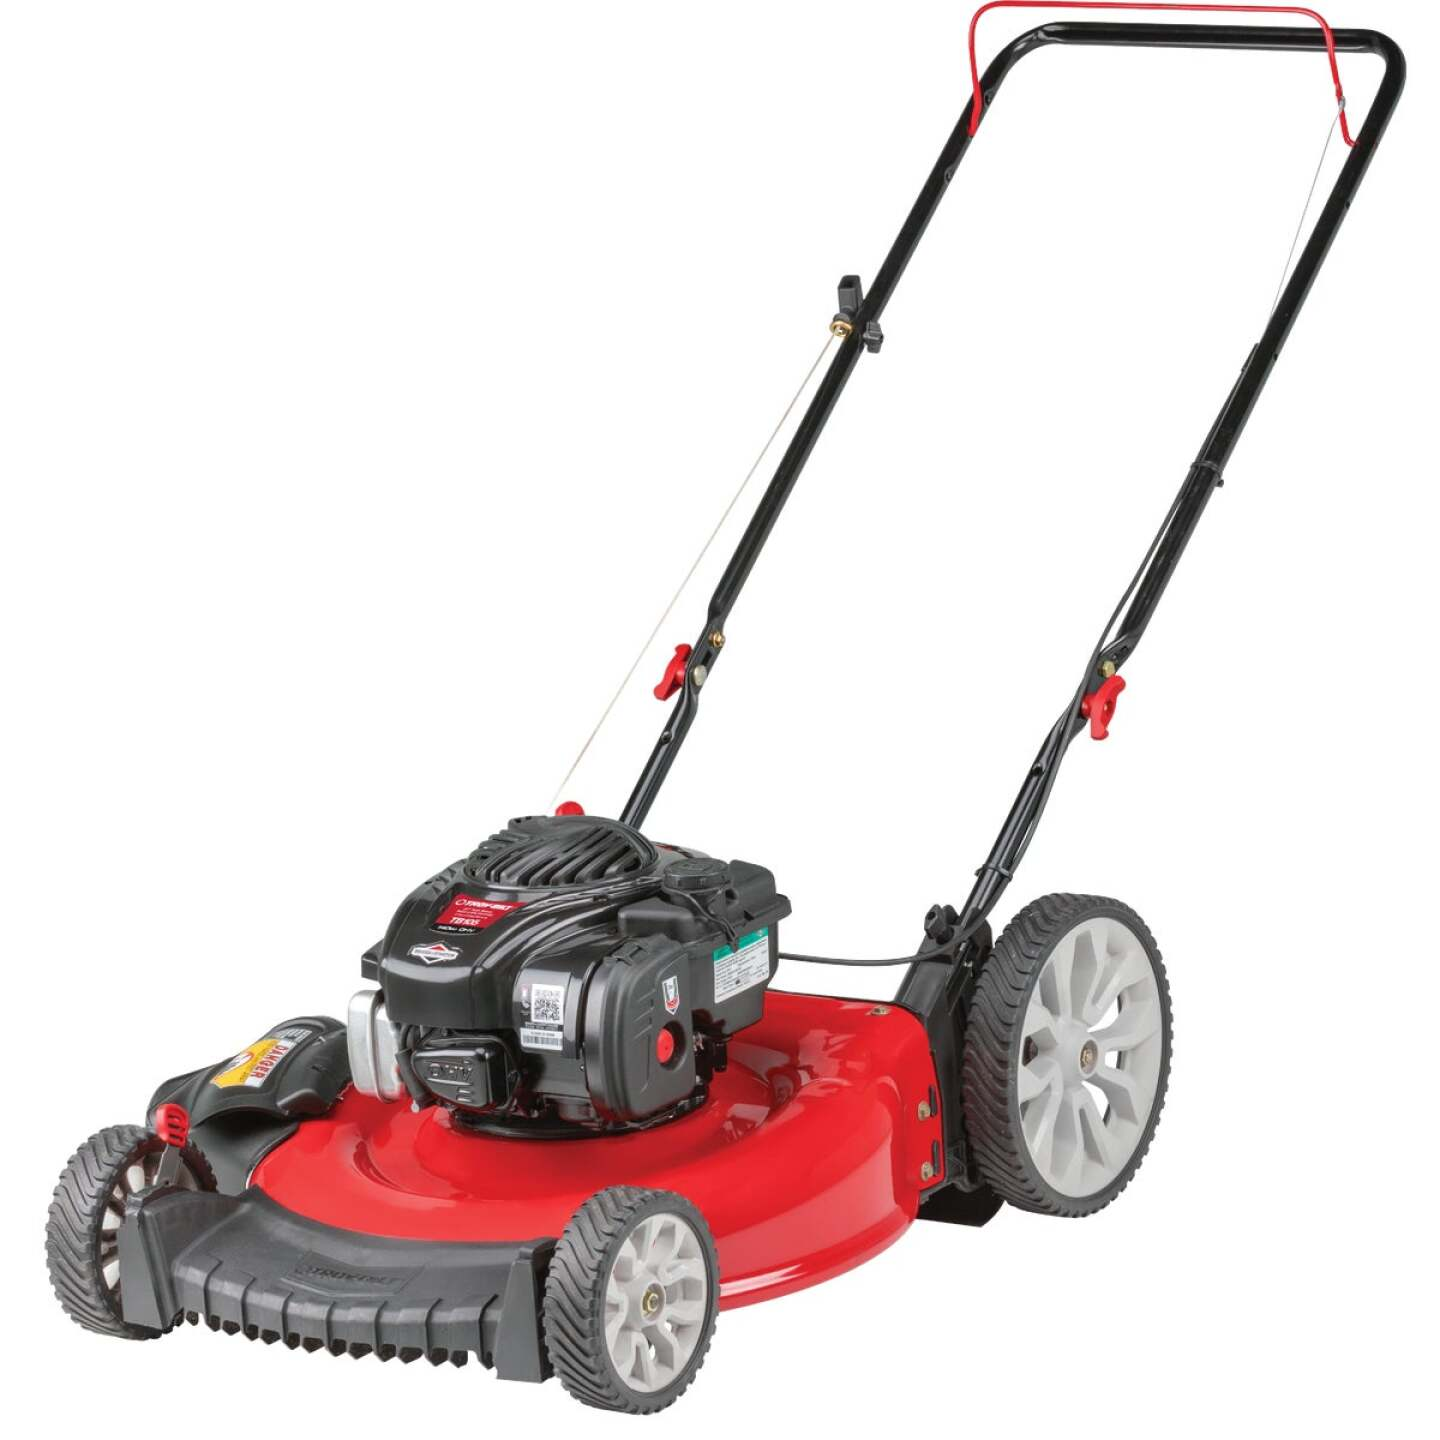 Troy-Bilt TB105 21 In. 140cc High Wheel Push Gas Lawn Mower Image 1